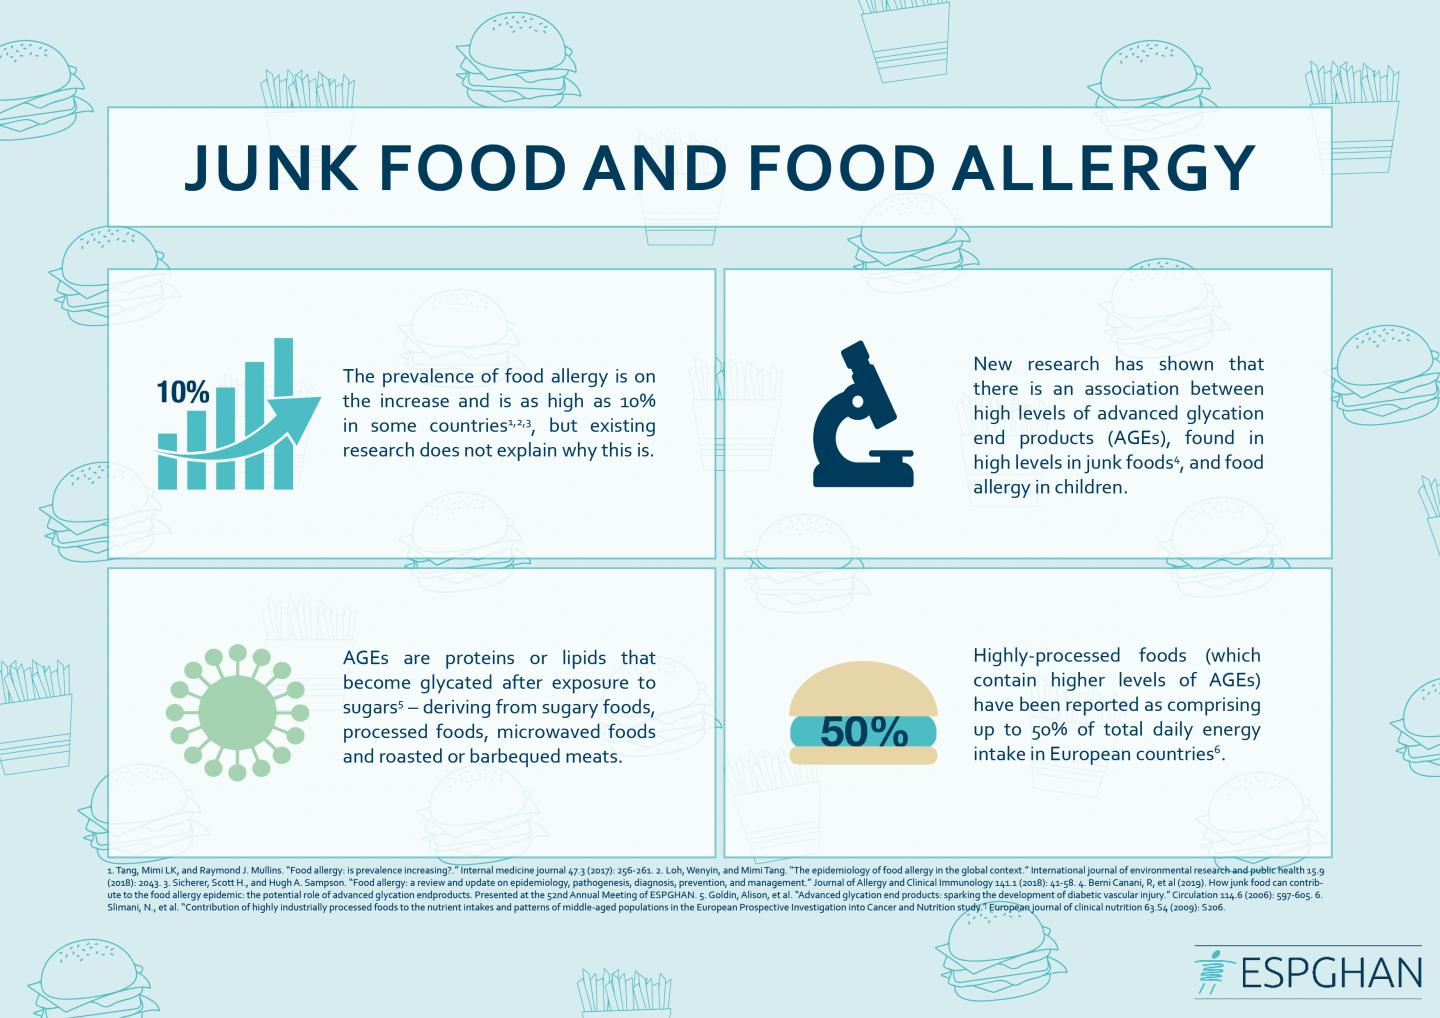 Junk Food and Food Allergy Infographic